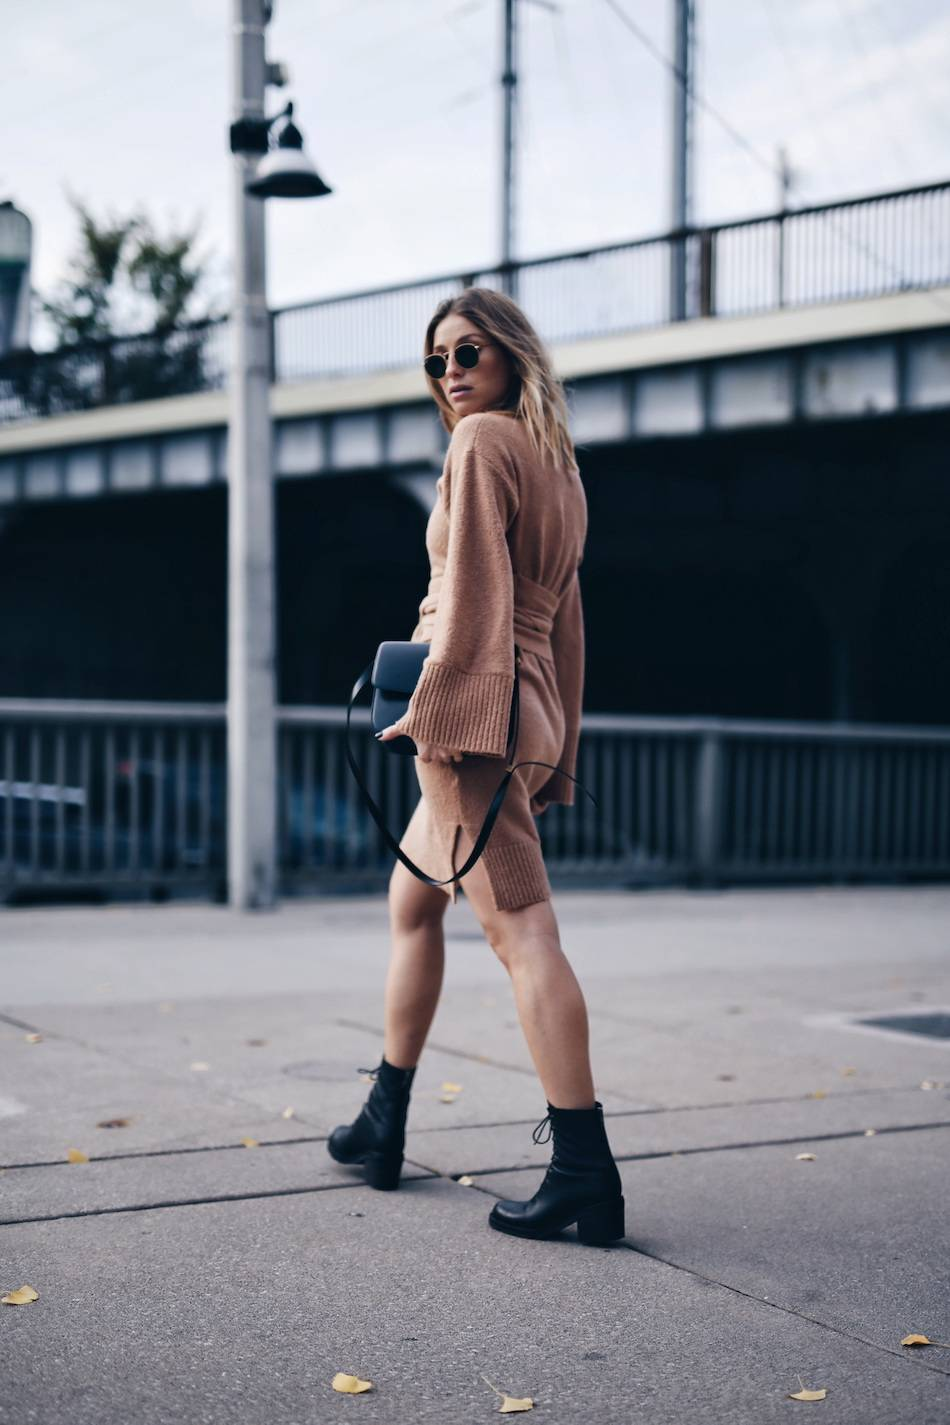 style-blogger-jill-lansky-of-the-august-diaries-wearing-chic-winter-style-in-3-1-phillip-lim-knit-dress